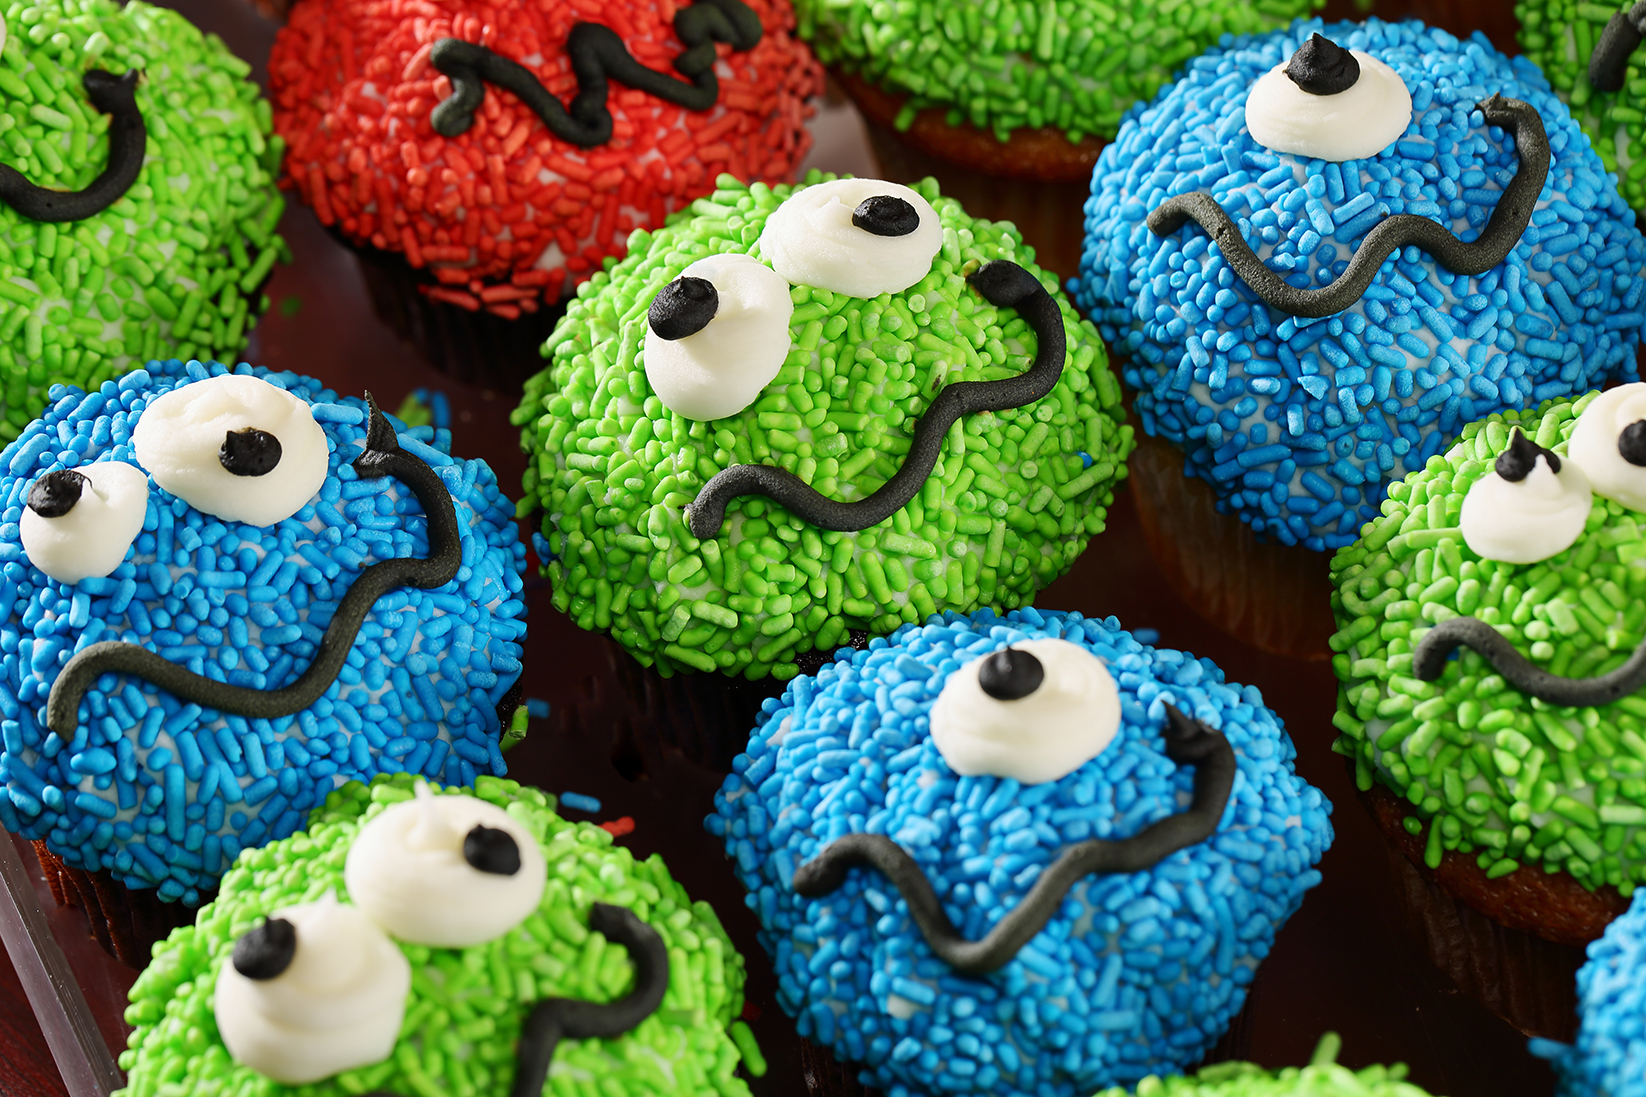 This is a photo of multi color cupcakes covered in sprinkles and smily faces